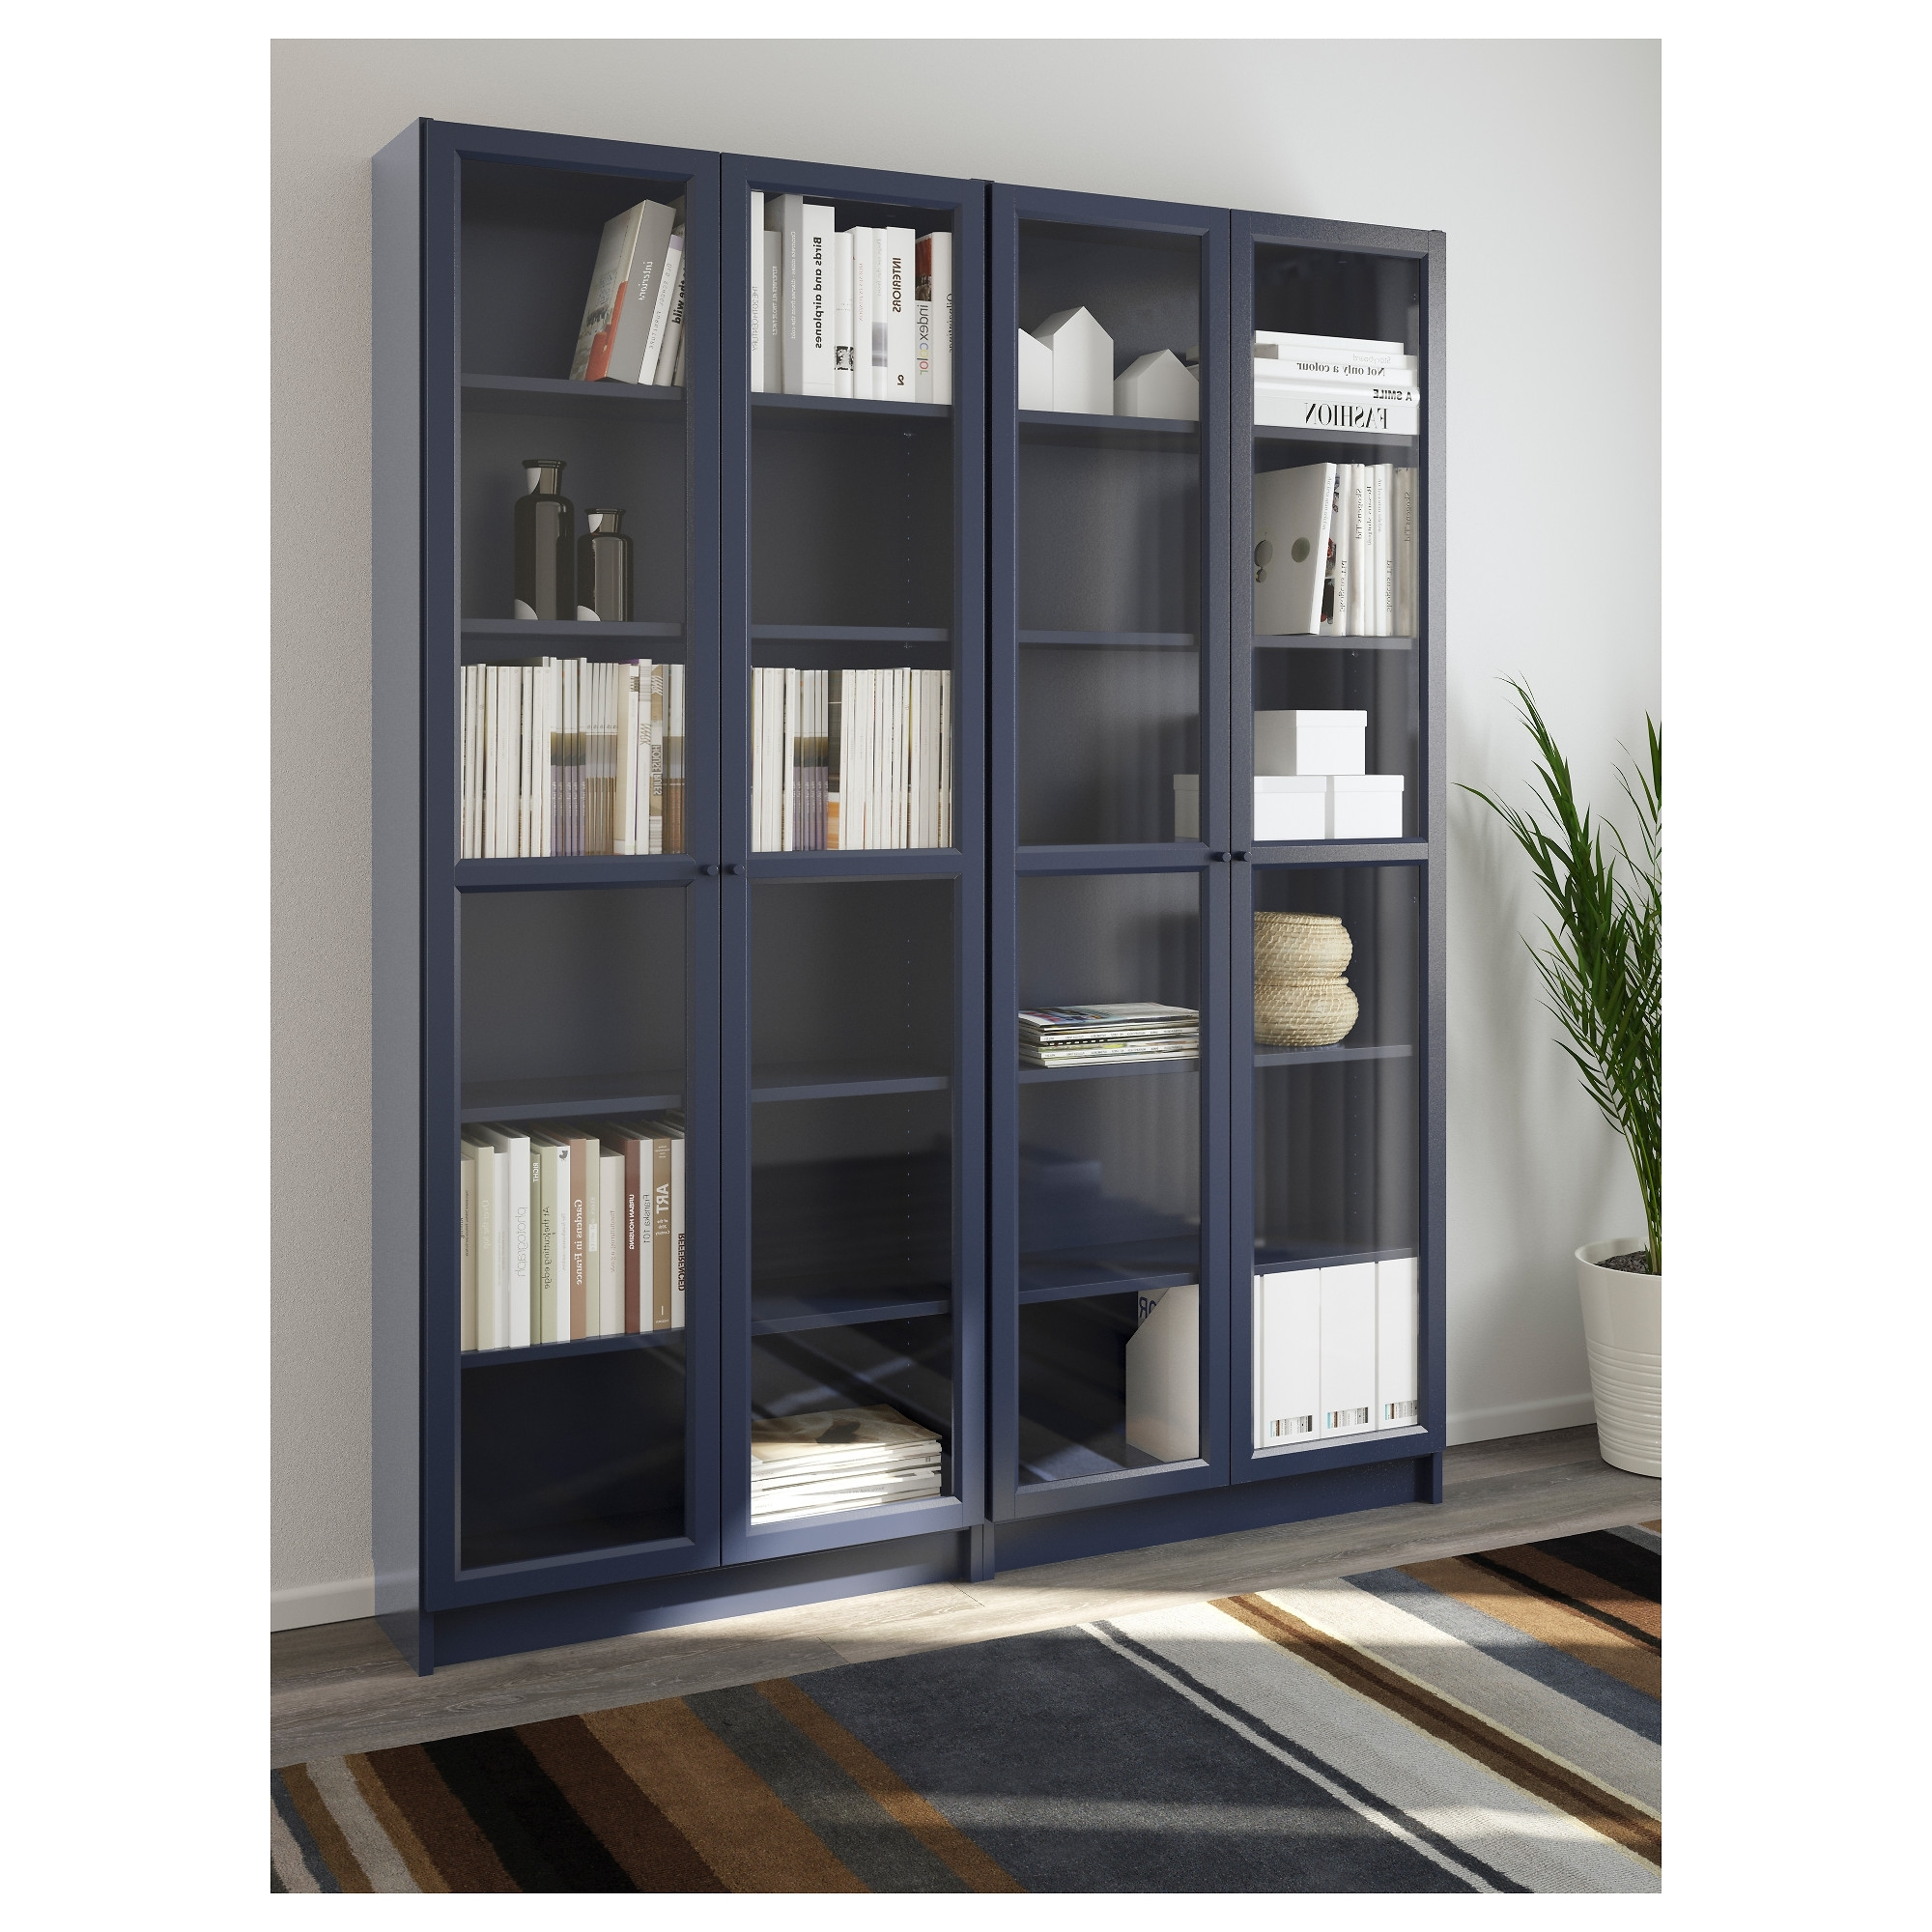 Ikea Billy Bookcases For Famous Billy / Oxberg Bookcase – White/glass, 160x202x28 Cm – Ikea (View 12 of 15)